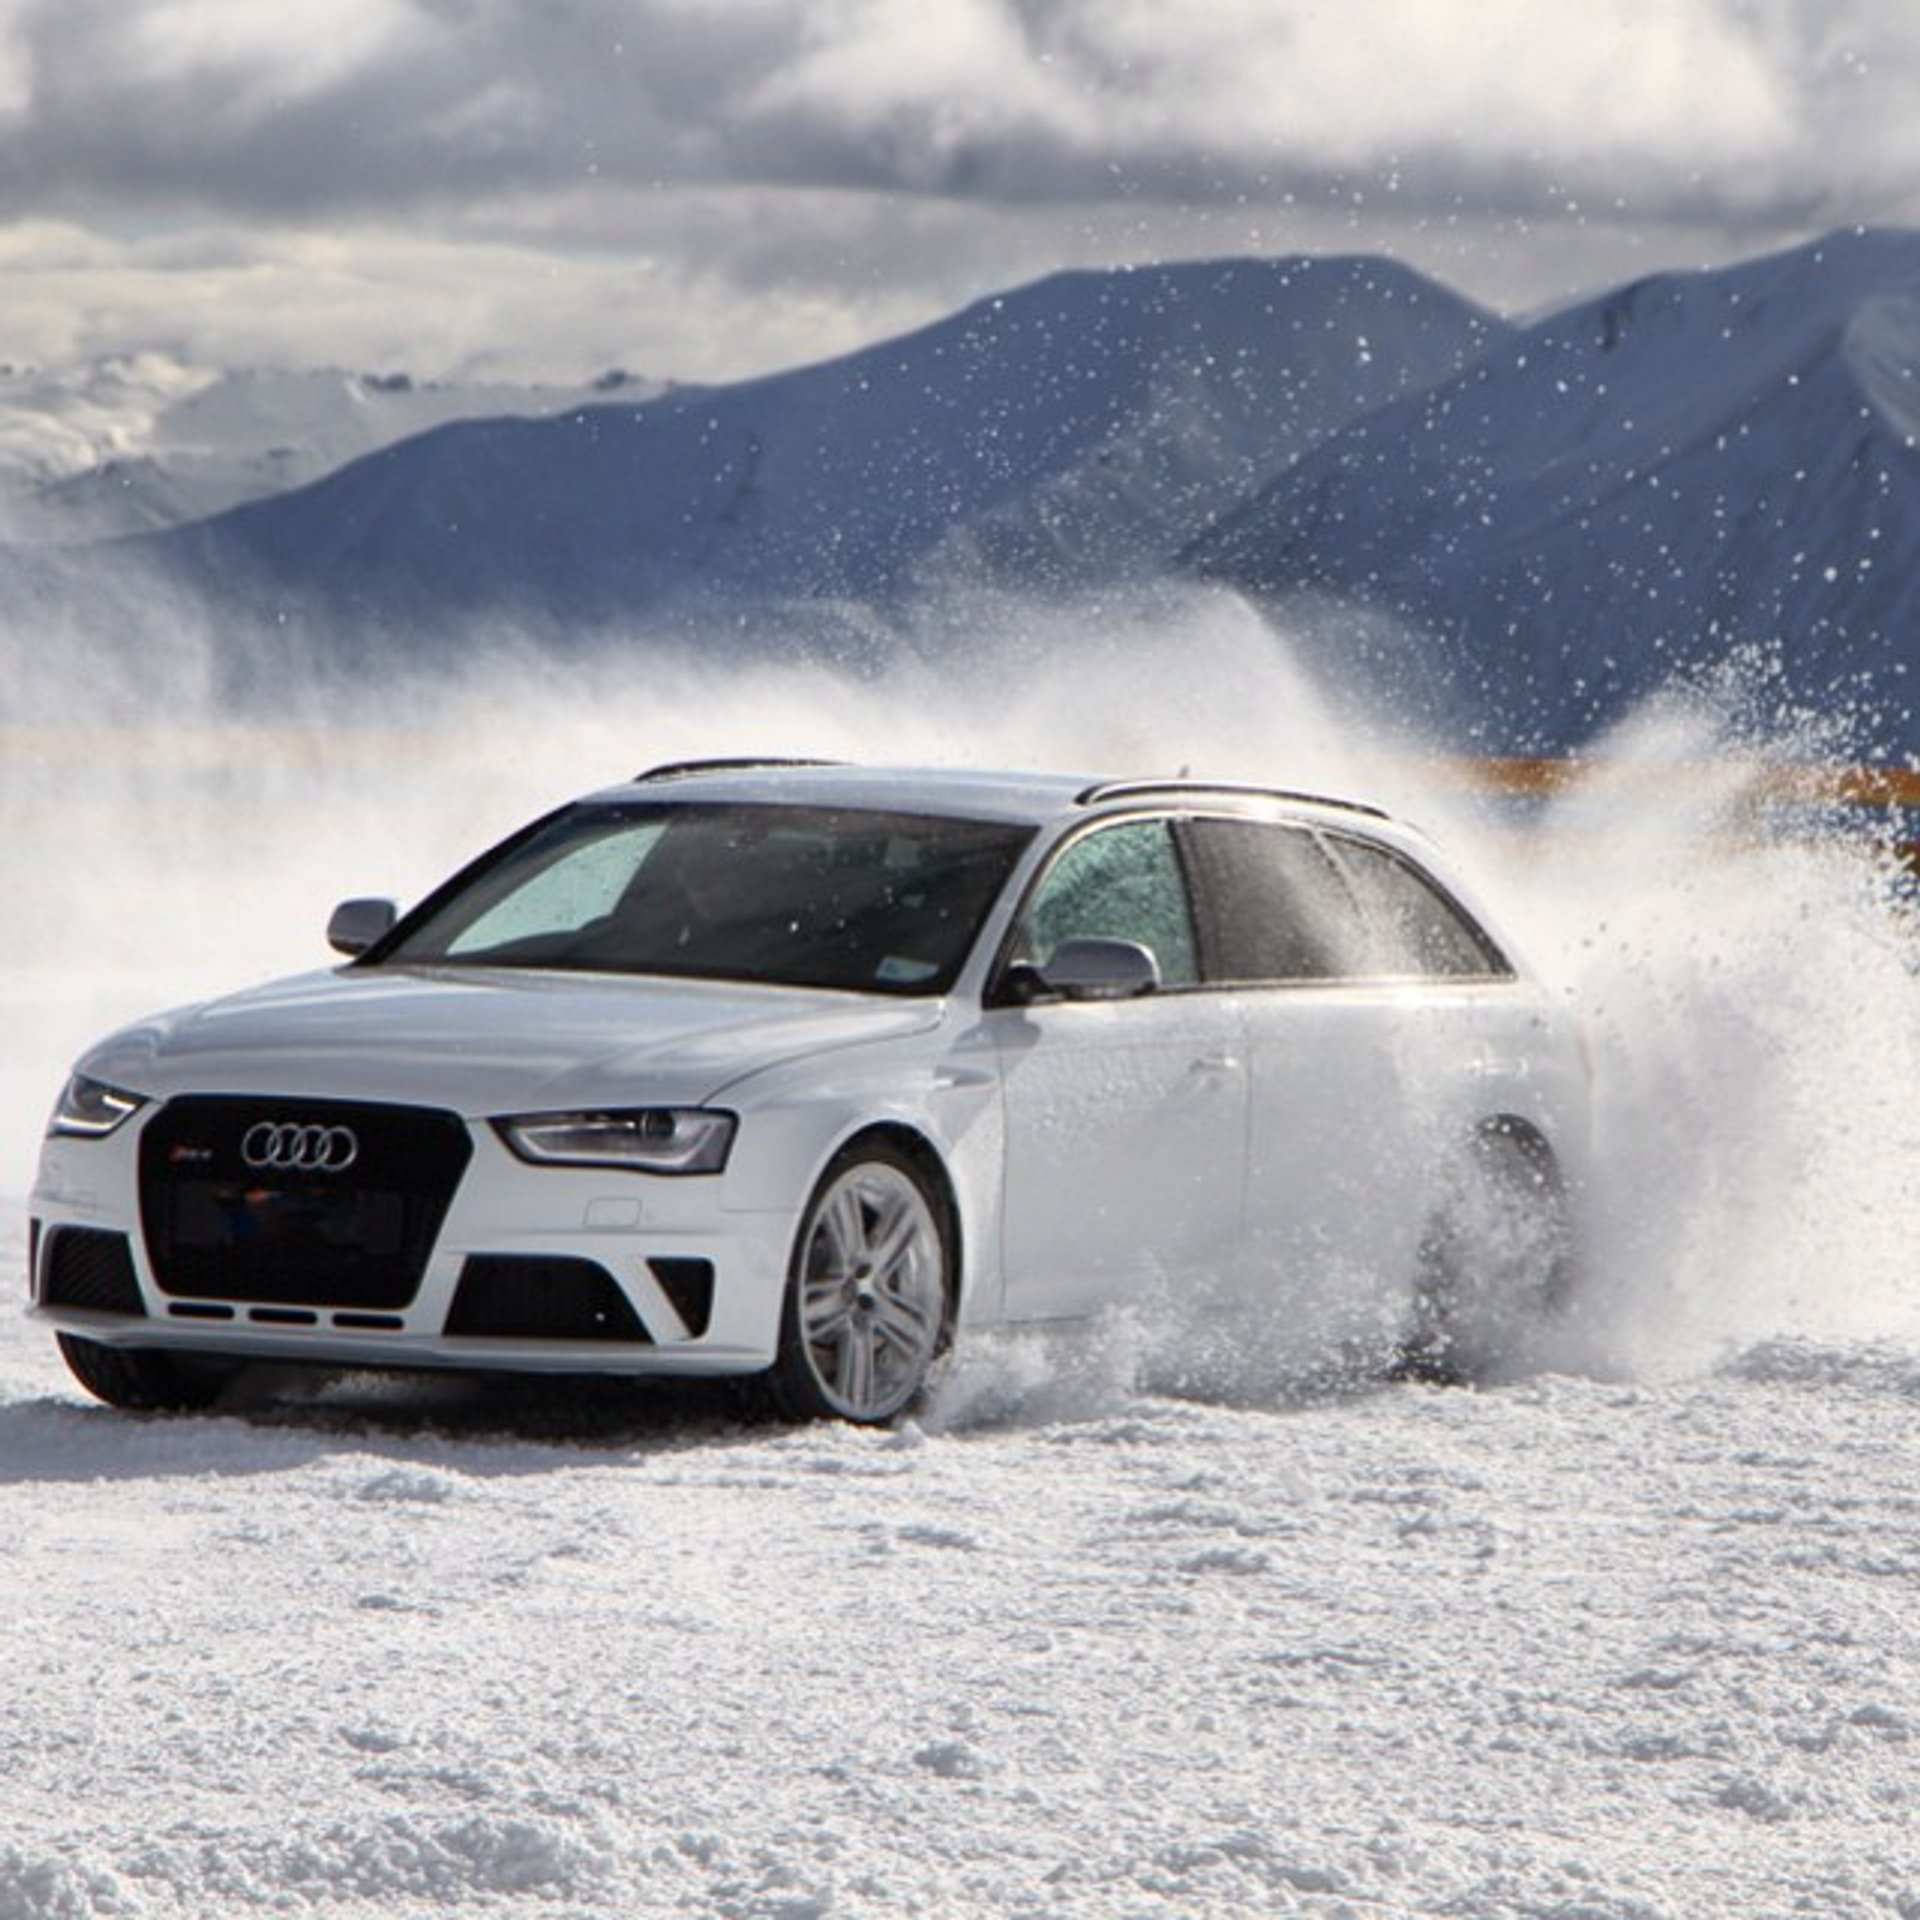 Wanaka Snow and Ice Driving in New Zealand 2020 - Best Time